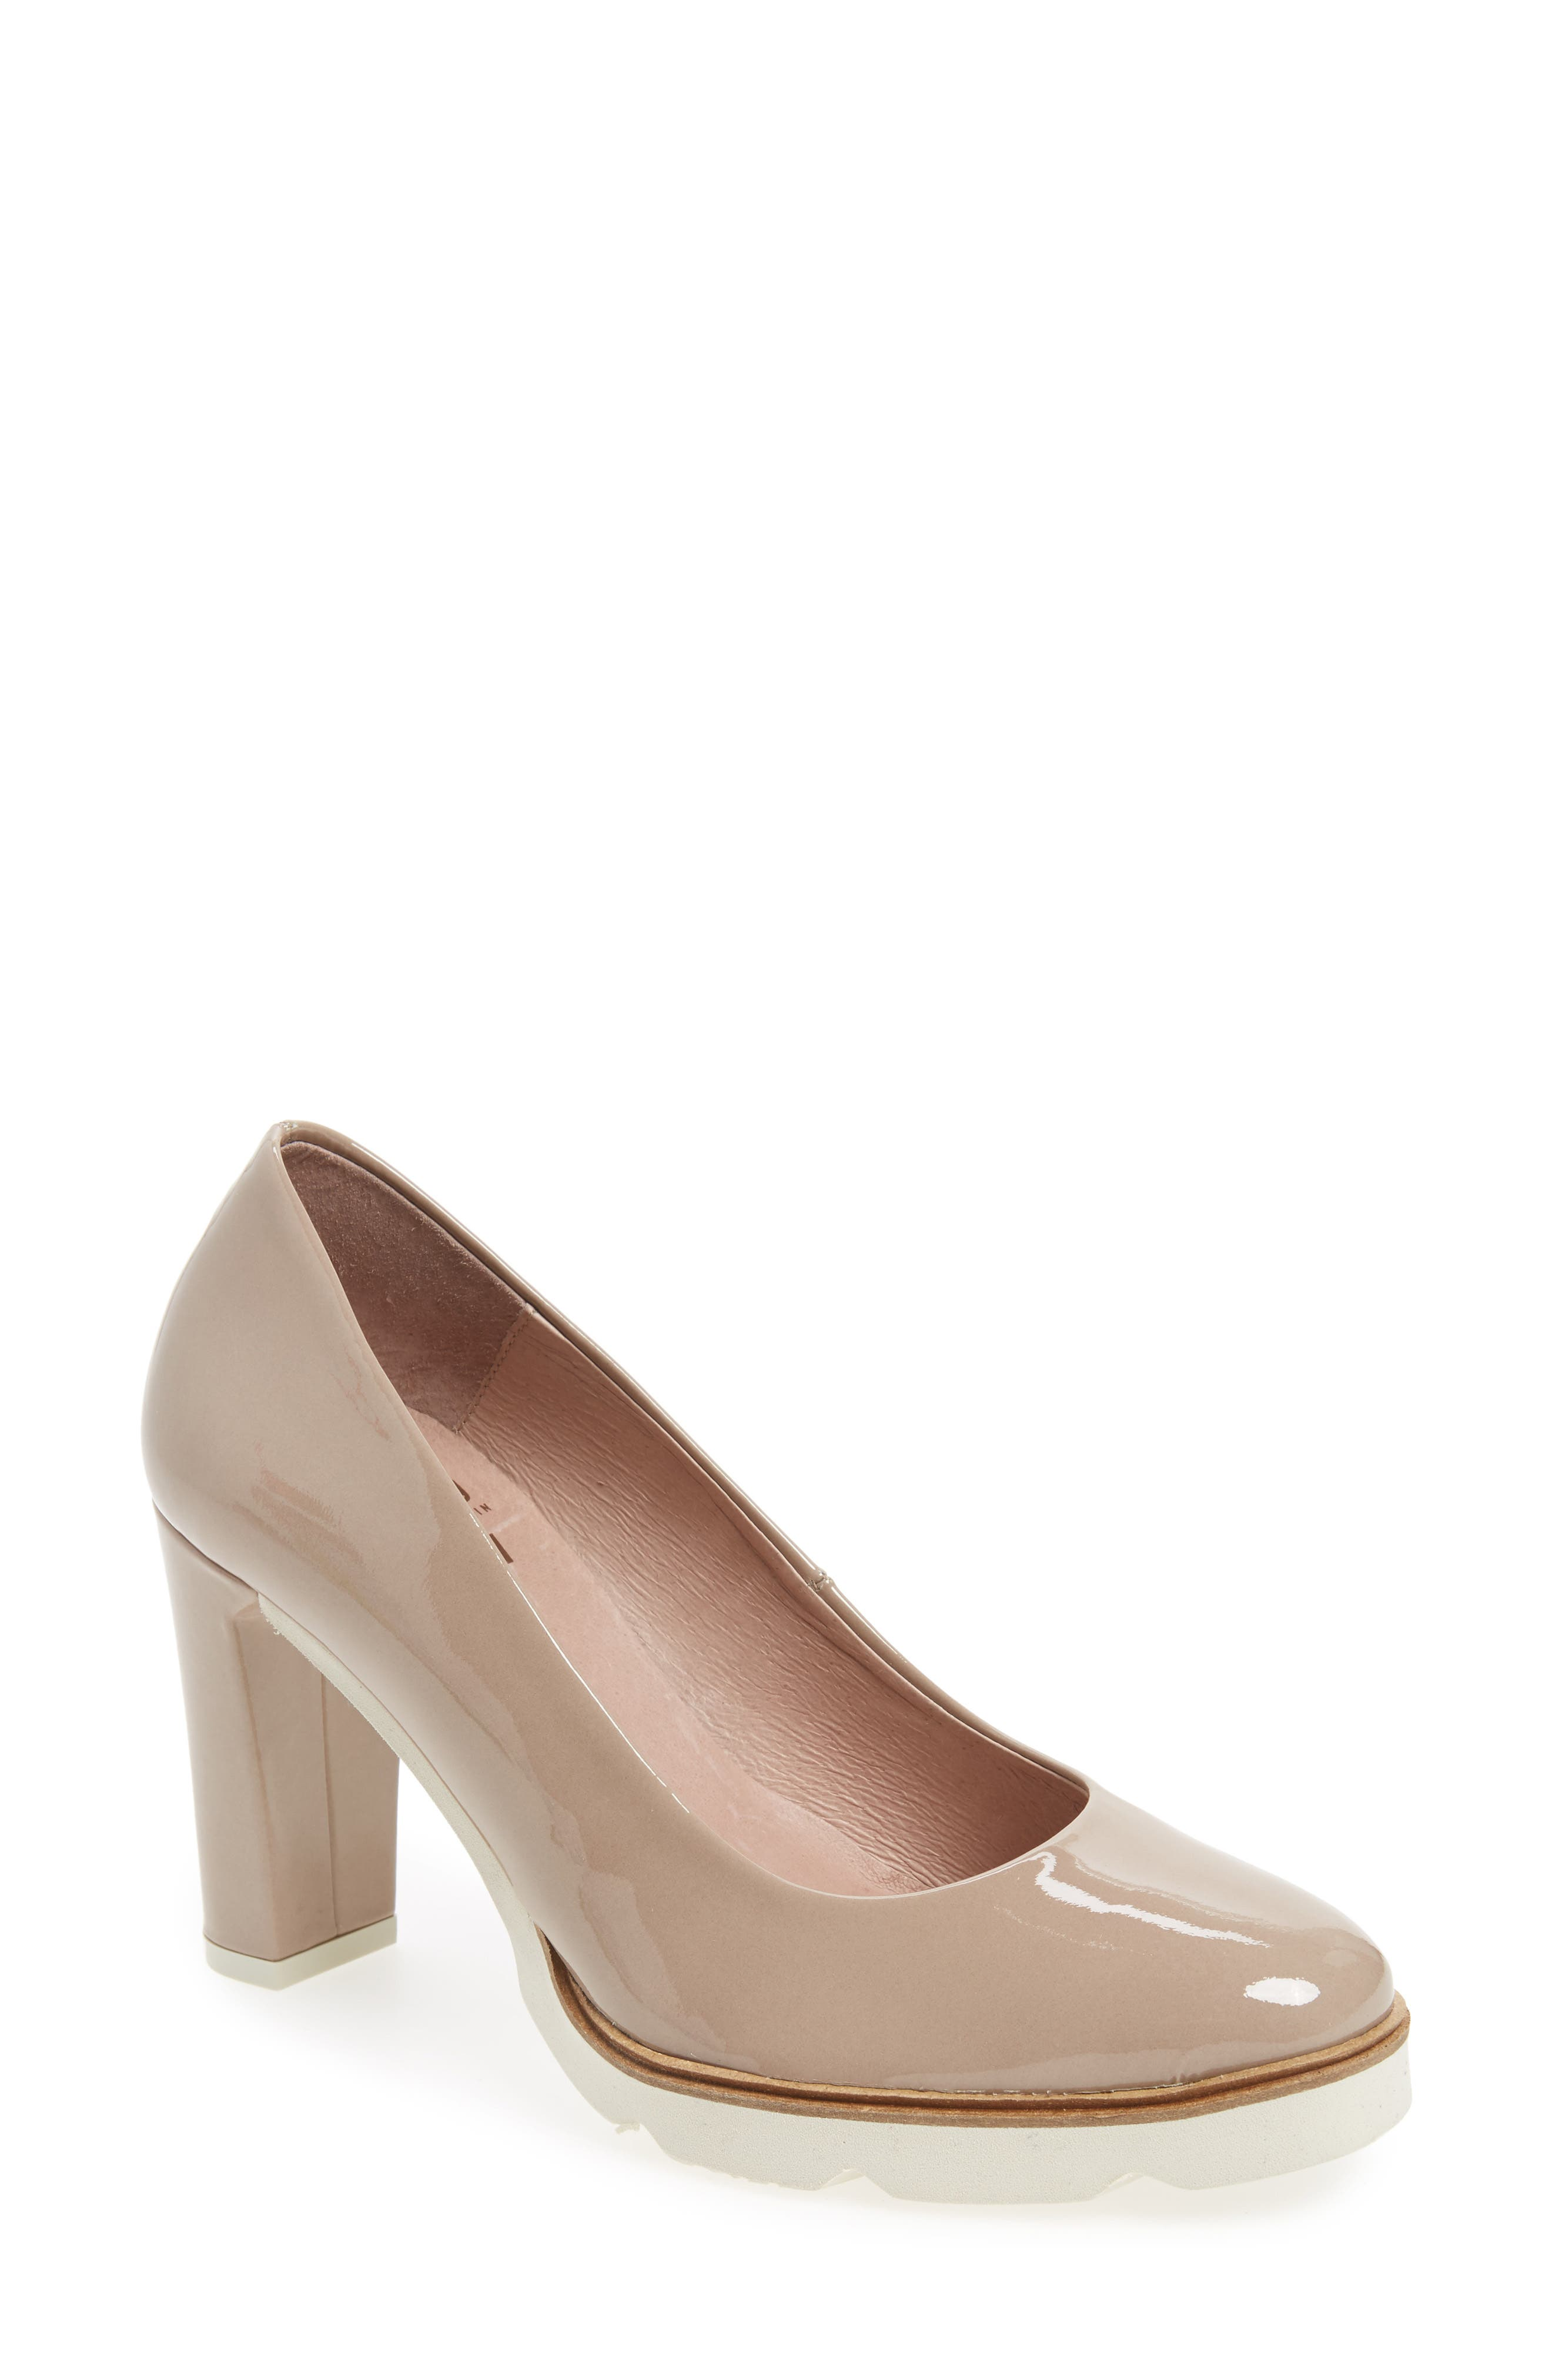 Almond Toe Pump,                             Main thumbnail 1, color,                             Taupe Leather